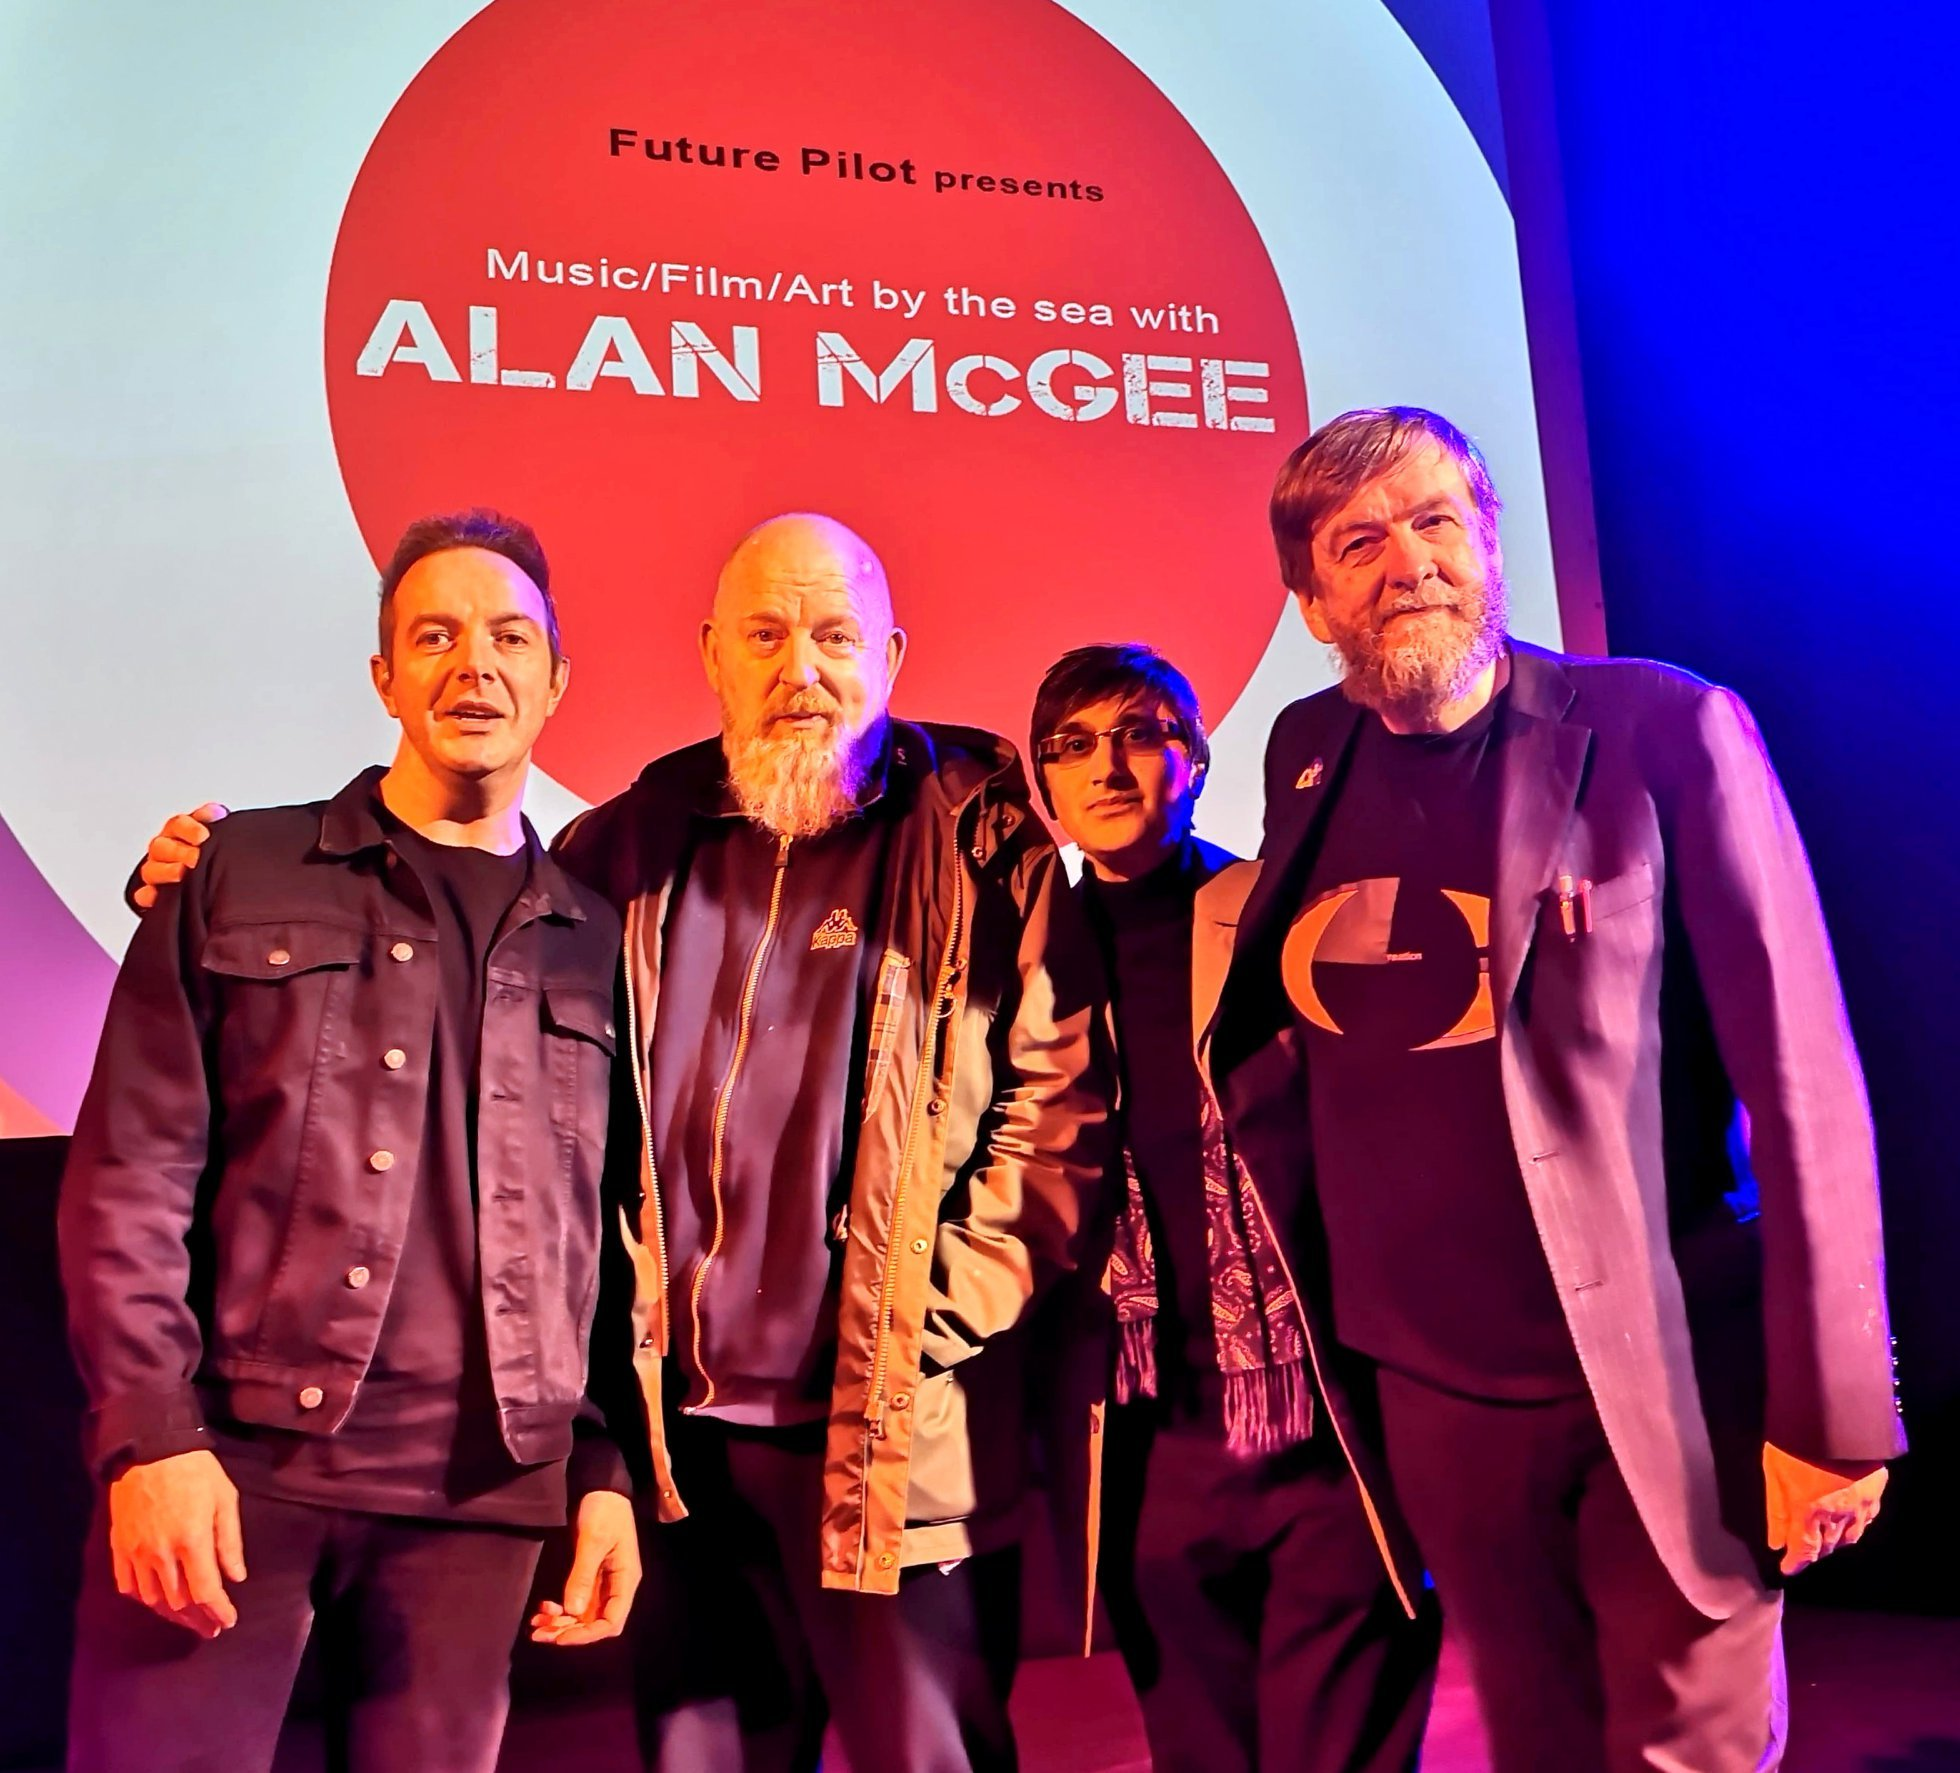 James Allan from Glasvegas (left) joined Alan McGee, Sushil K Dade and Duglas T Stewart at the Helensburgh event